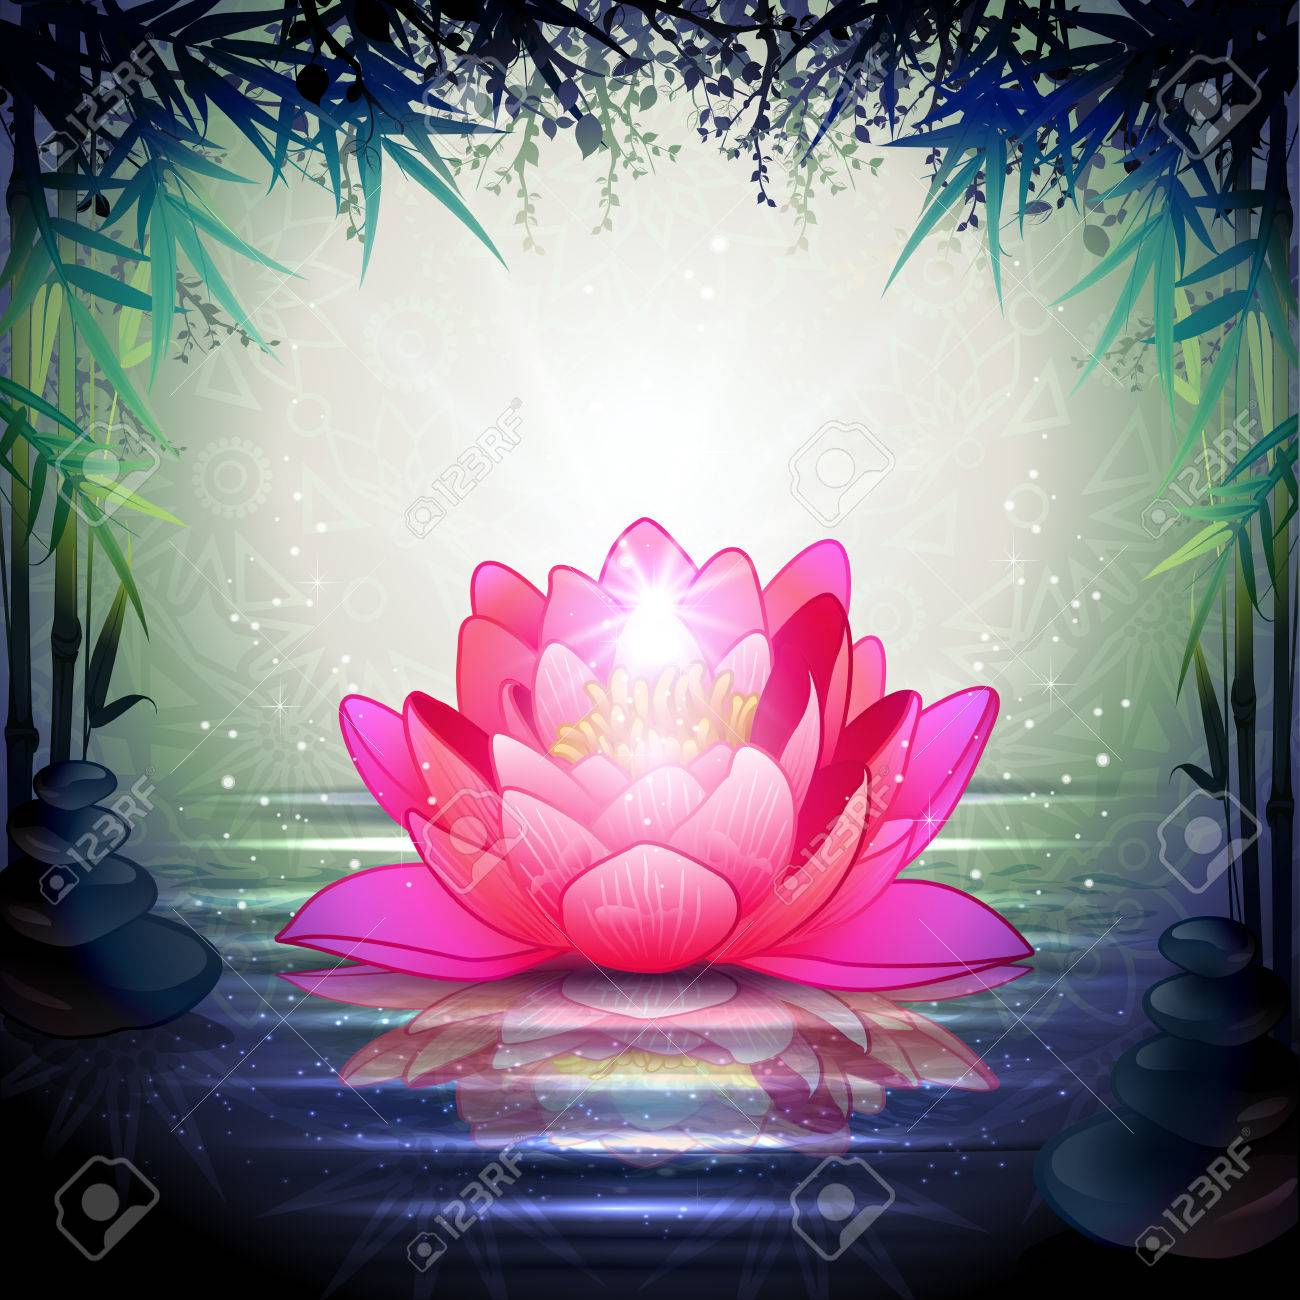 Lotus Flower In Tranquil Zen Garden Transparency Blending Effects